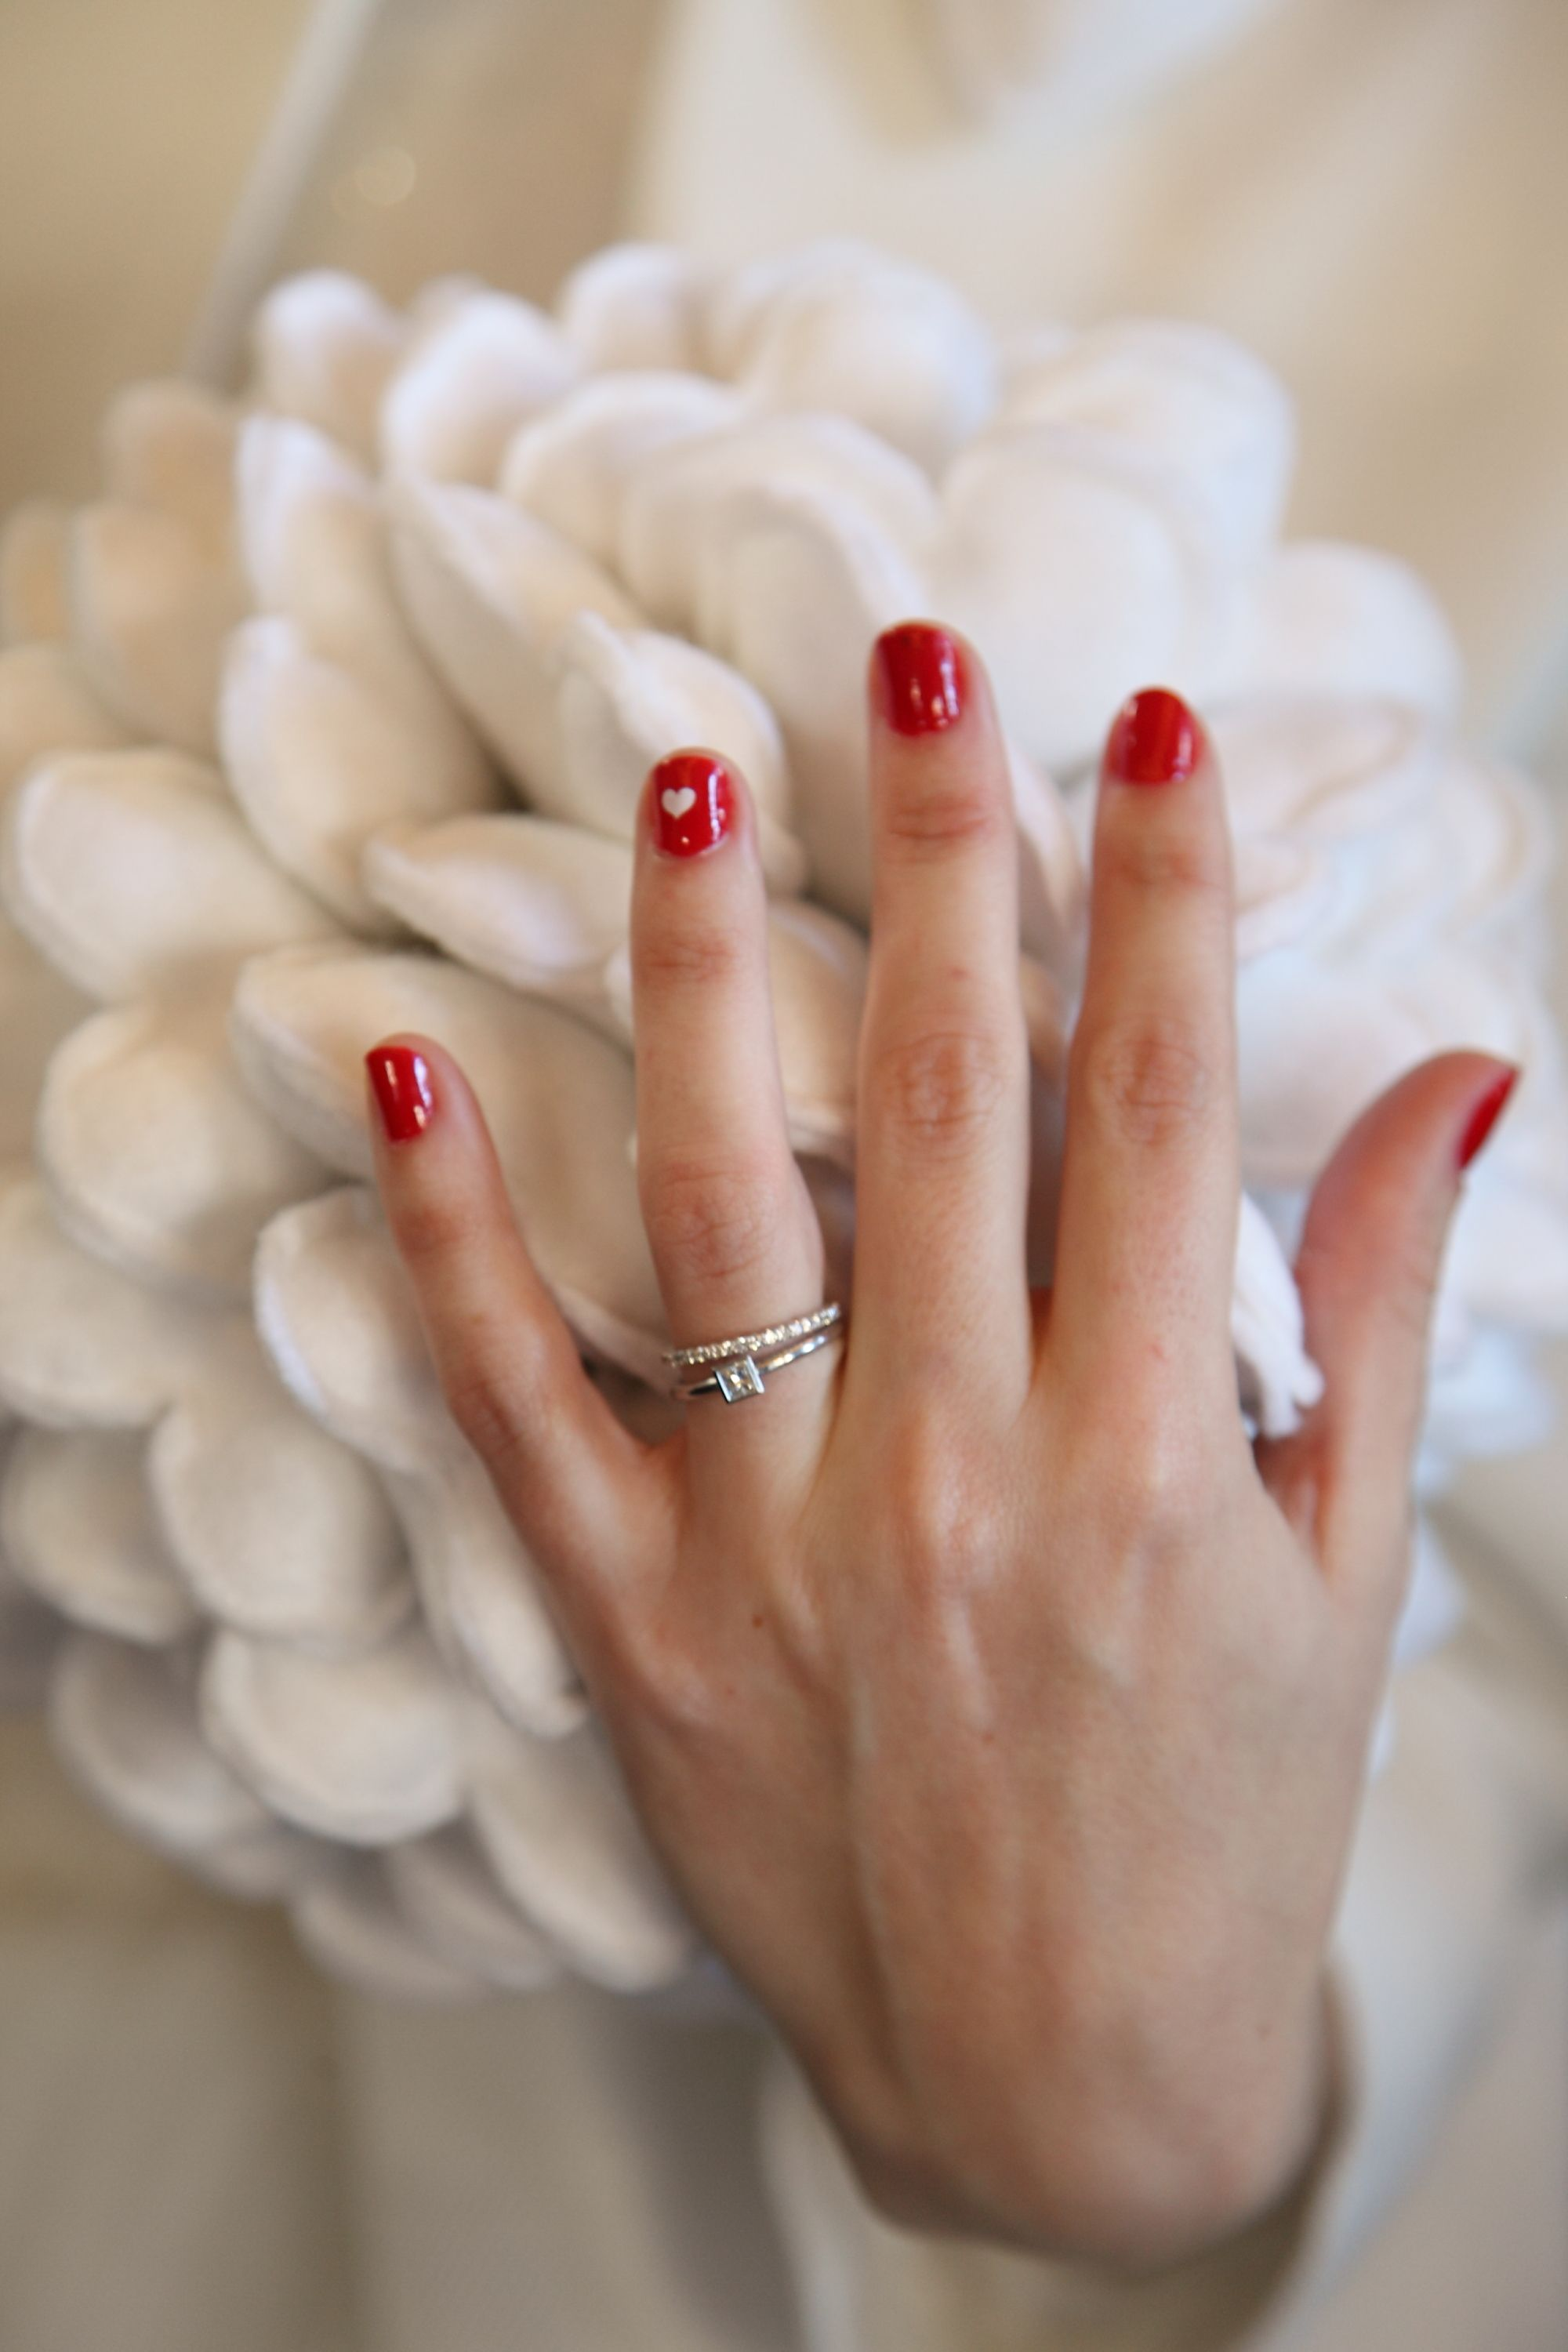 Manucure mariage maquillage manucure pinterest ongles alliances et manucure - French manucure mariage ...